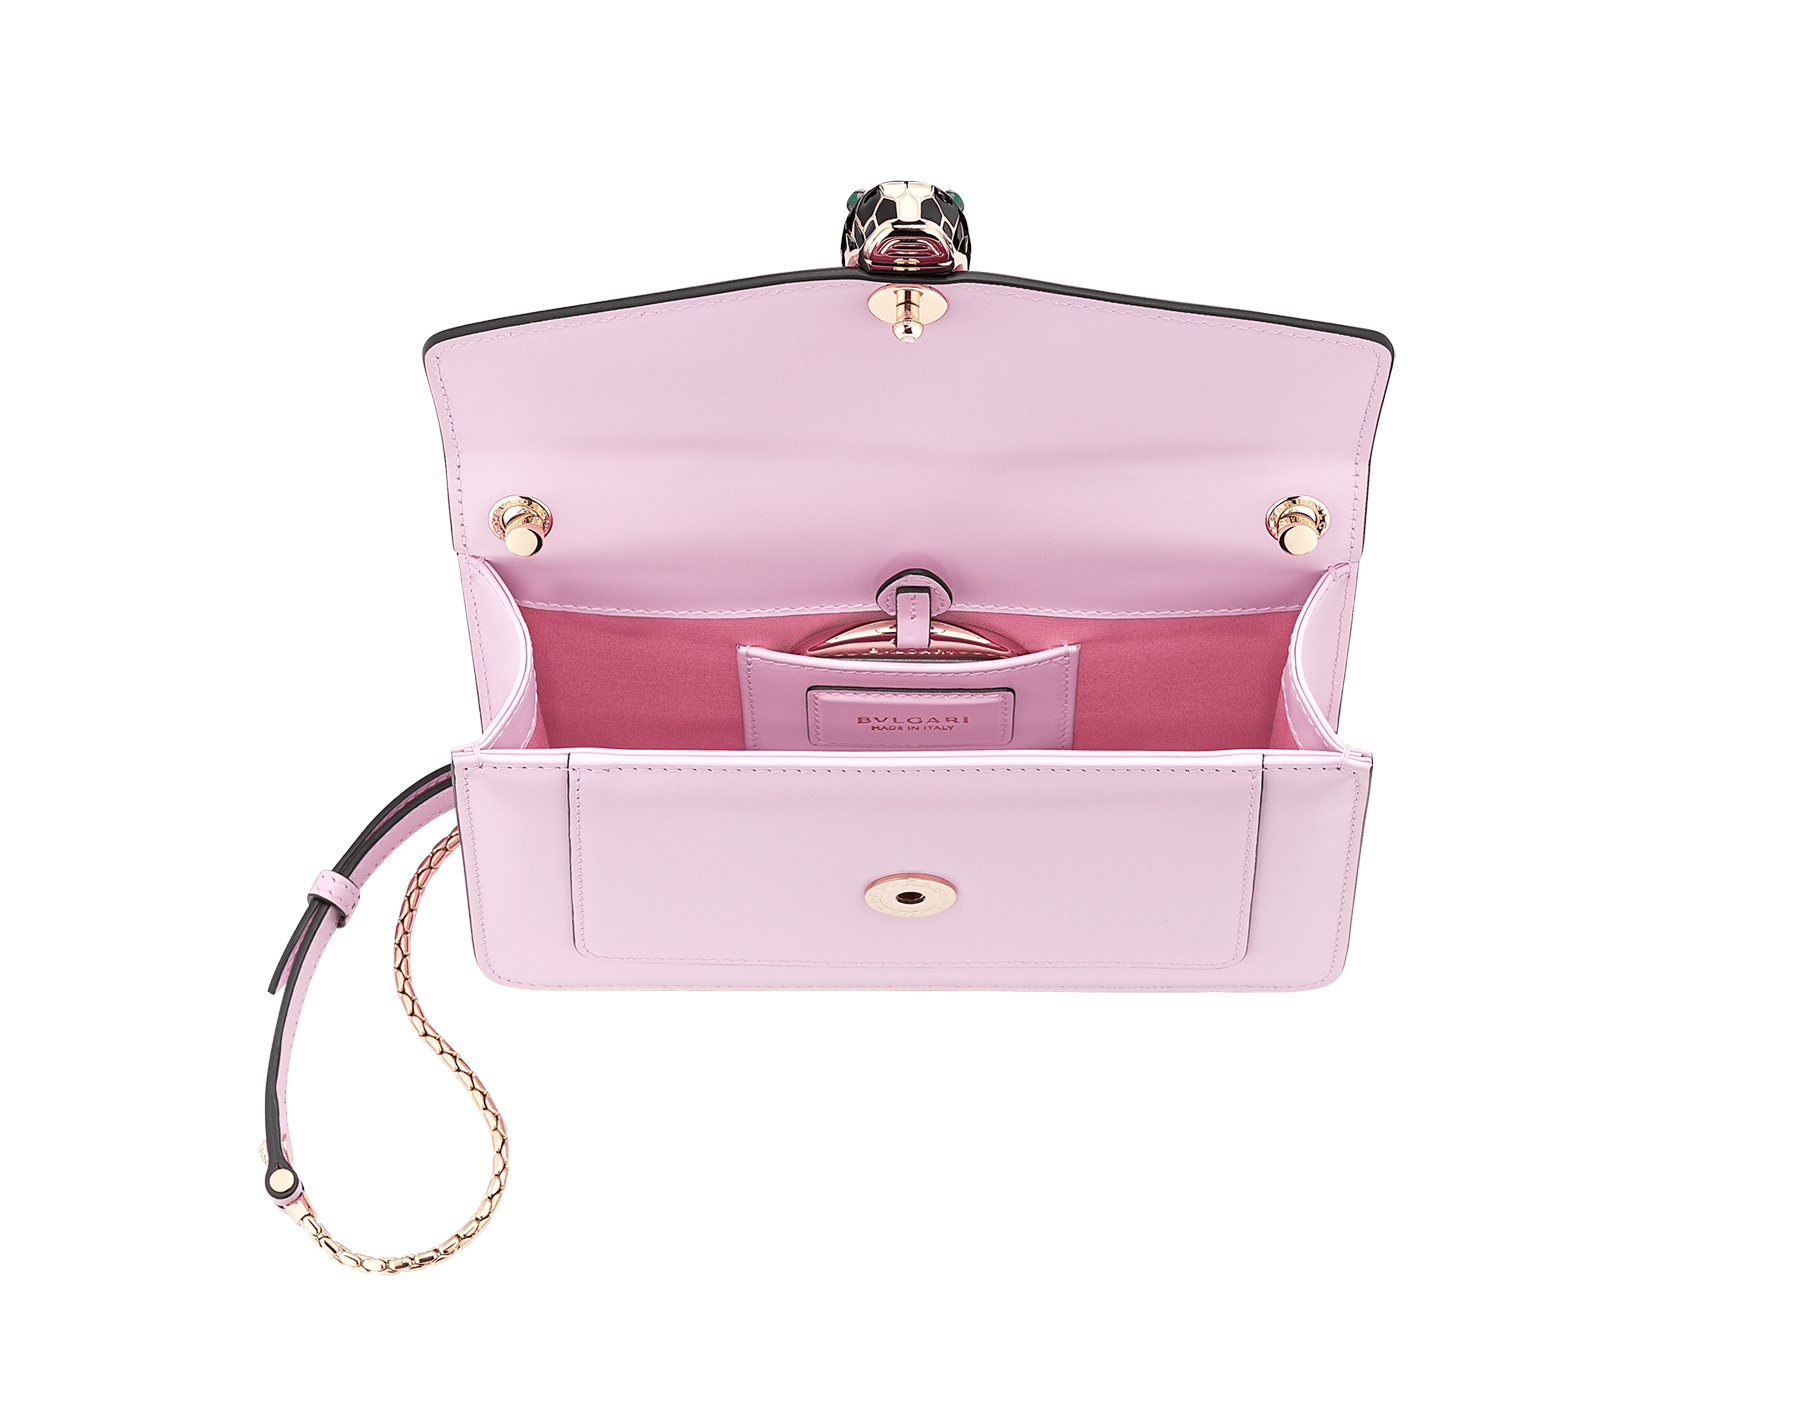 Serpenti Forever crossbody bag in rosa di francia calf leather. Iconic snakehead closure in light gold plated brass embellished with black and white enamel and green malachite eyes. 288715 image 4